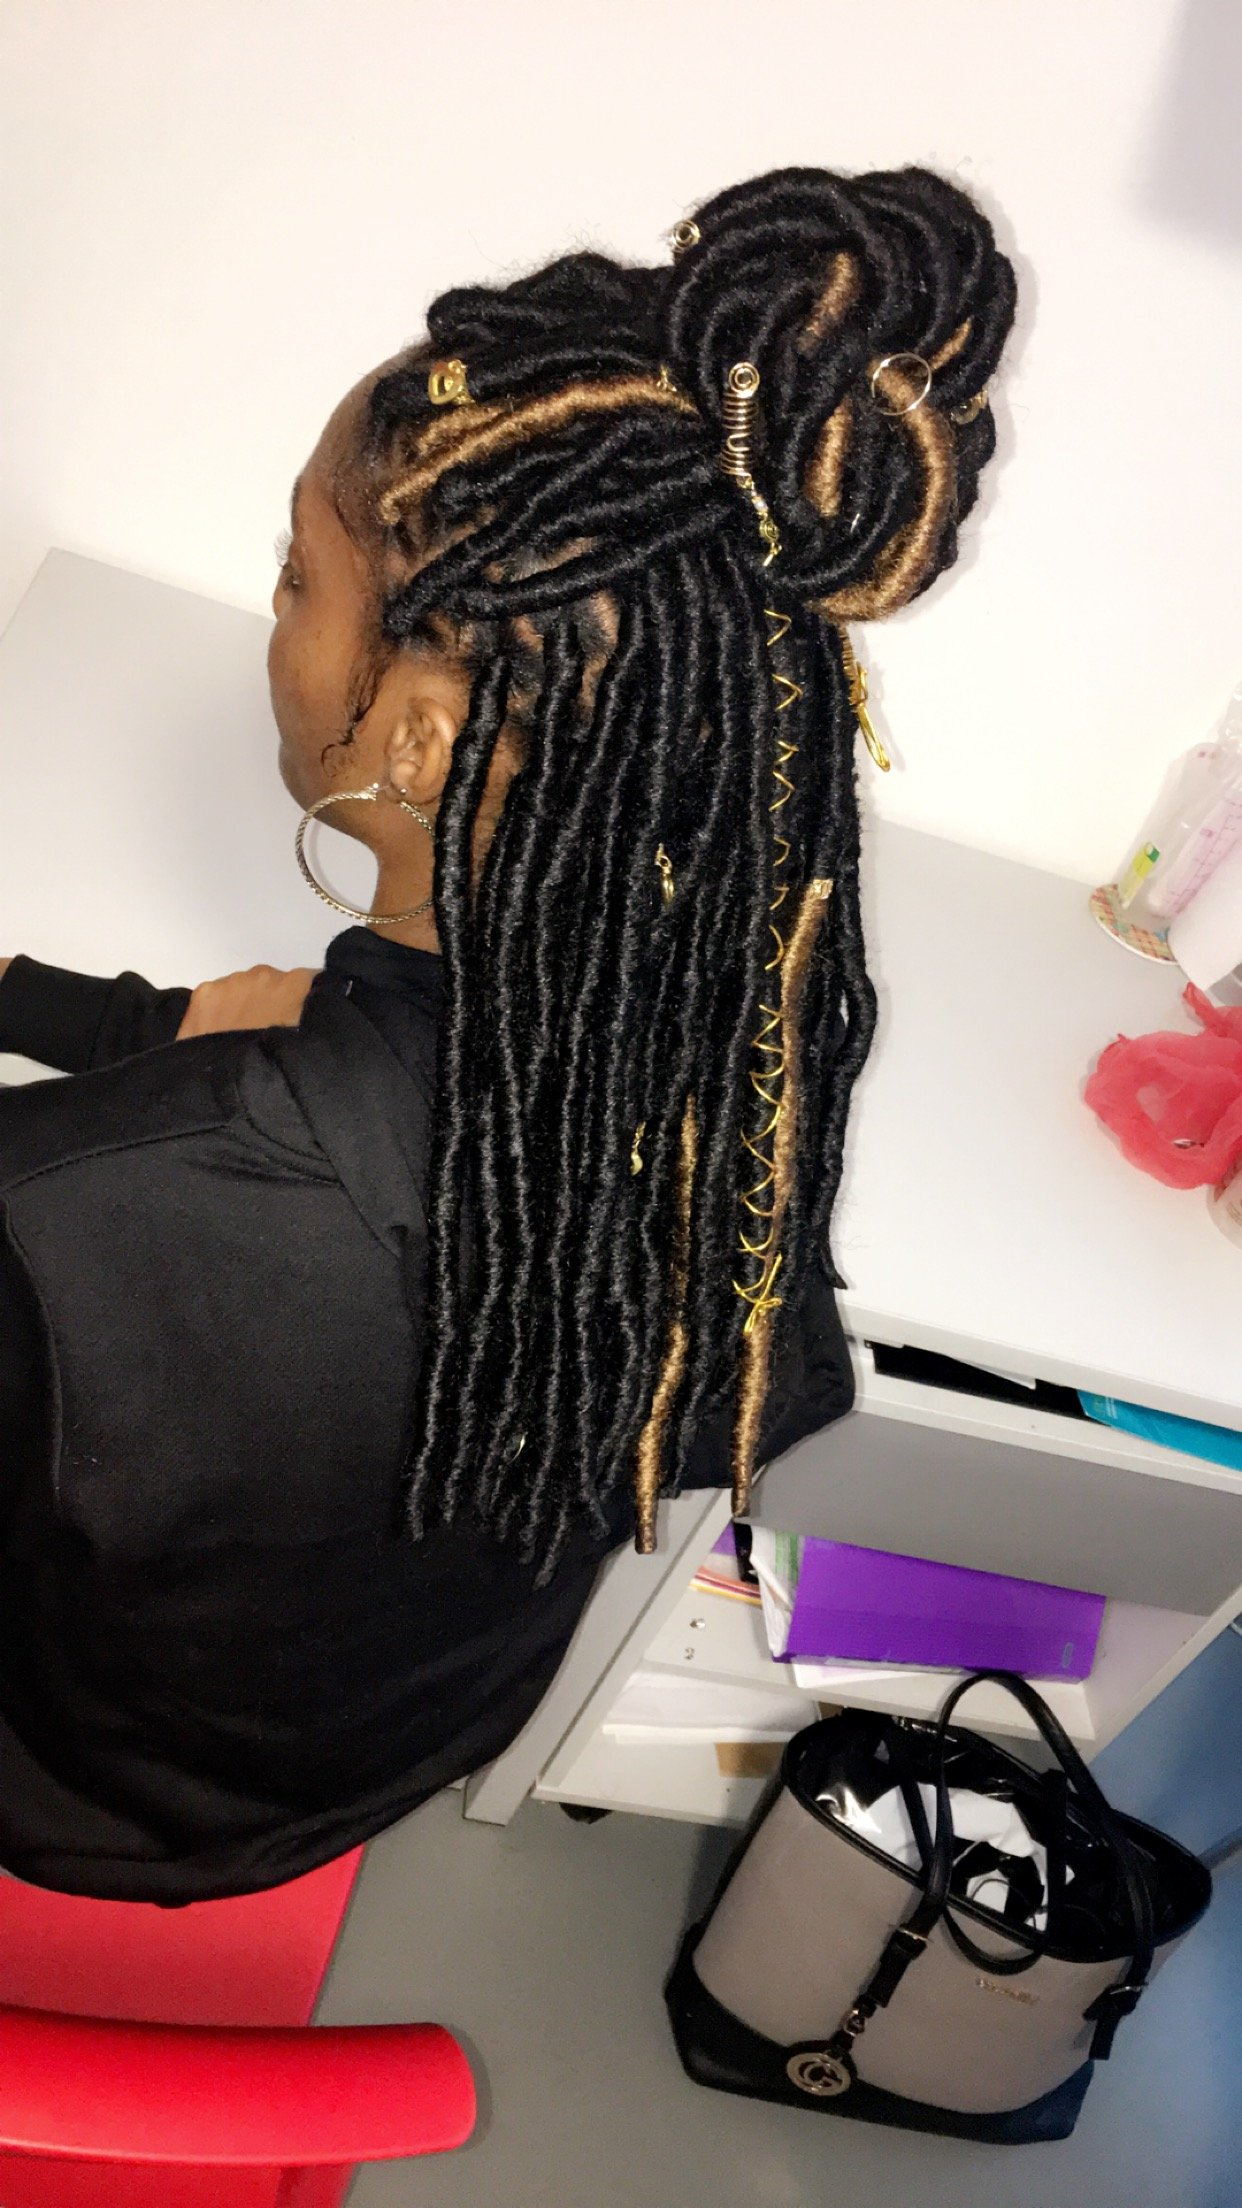 salon de coiffure afro tresse tresses box braids crochet braids vanilles tissages paris 75 77 78 91 92 93 94 95 CBNHACVL